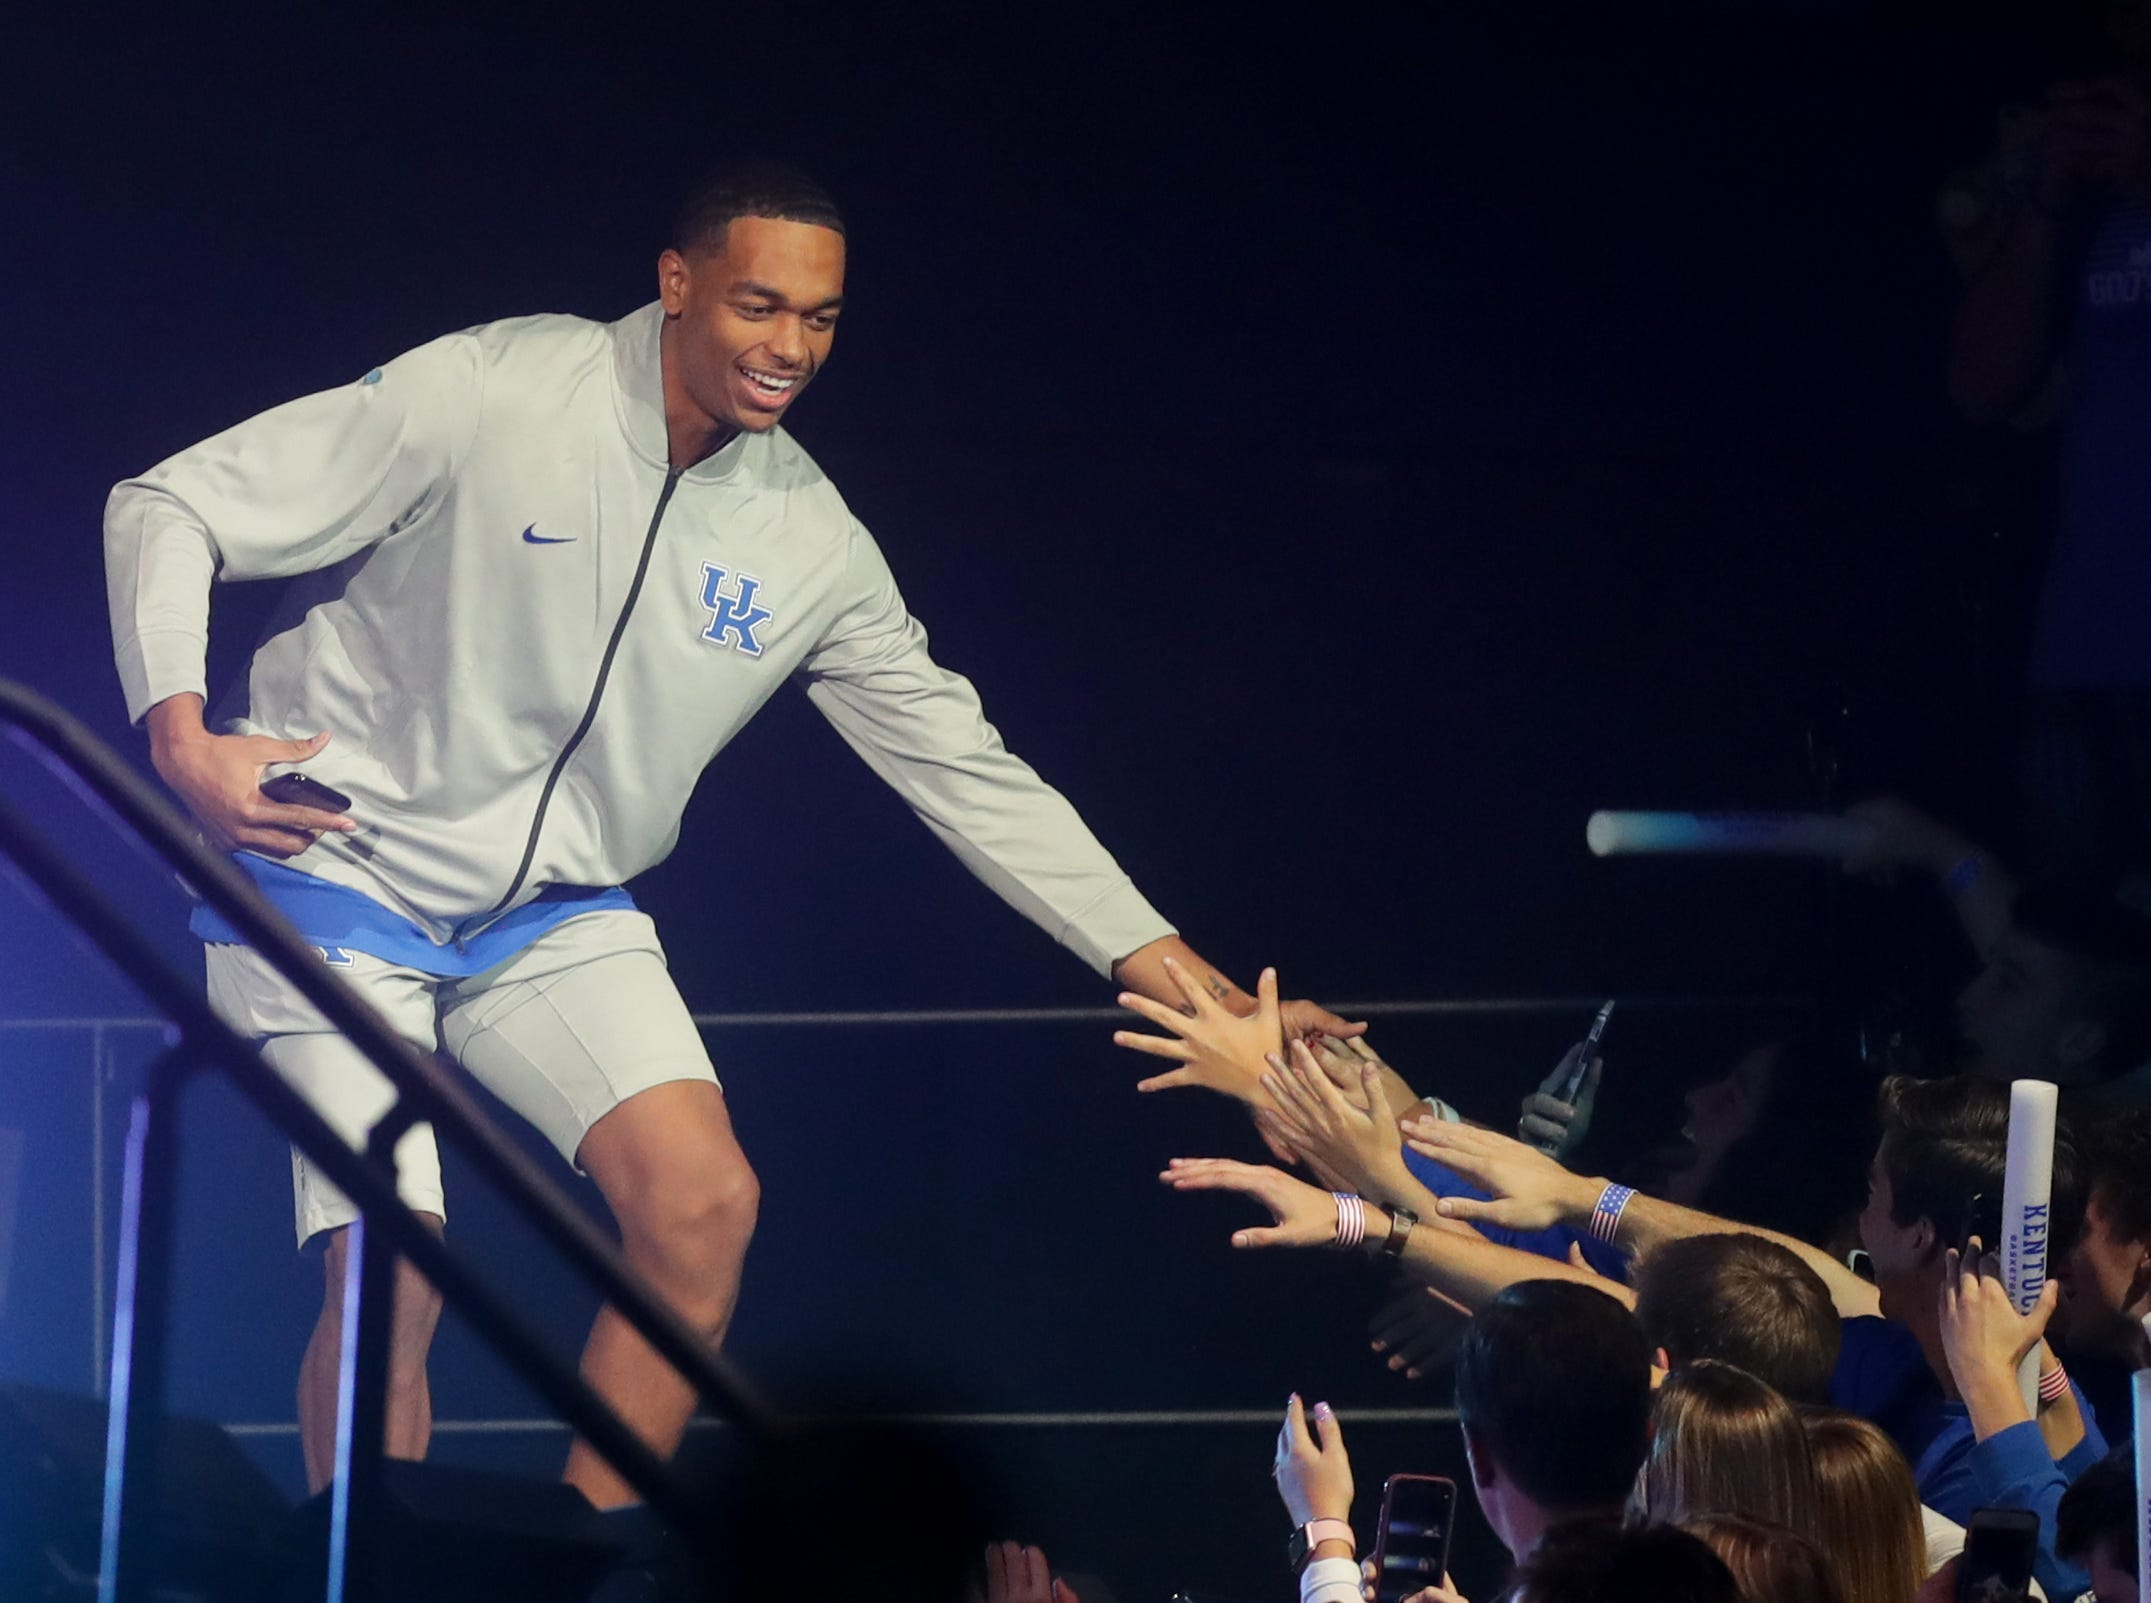 Kentucky PJ Washington is introduced at Big Blue Madness in Lexington, Kentucky.